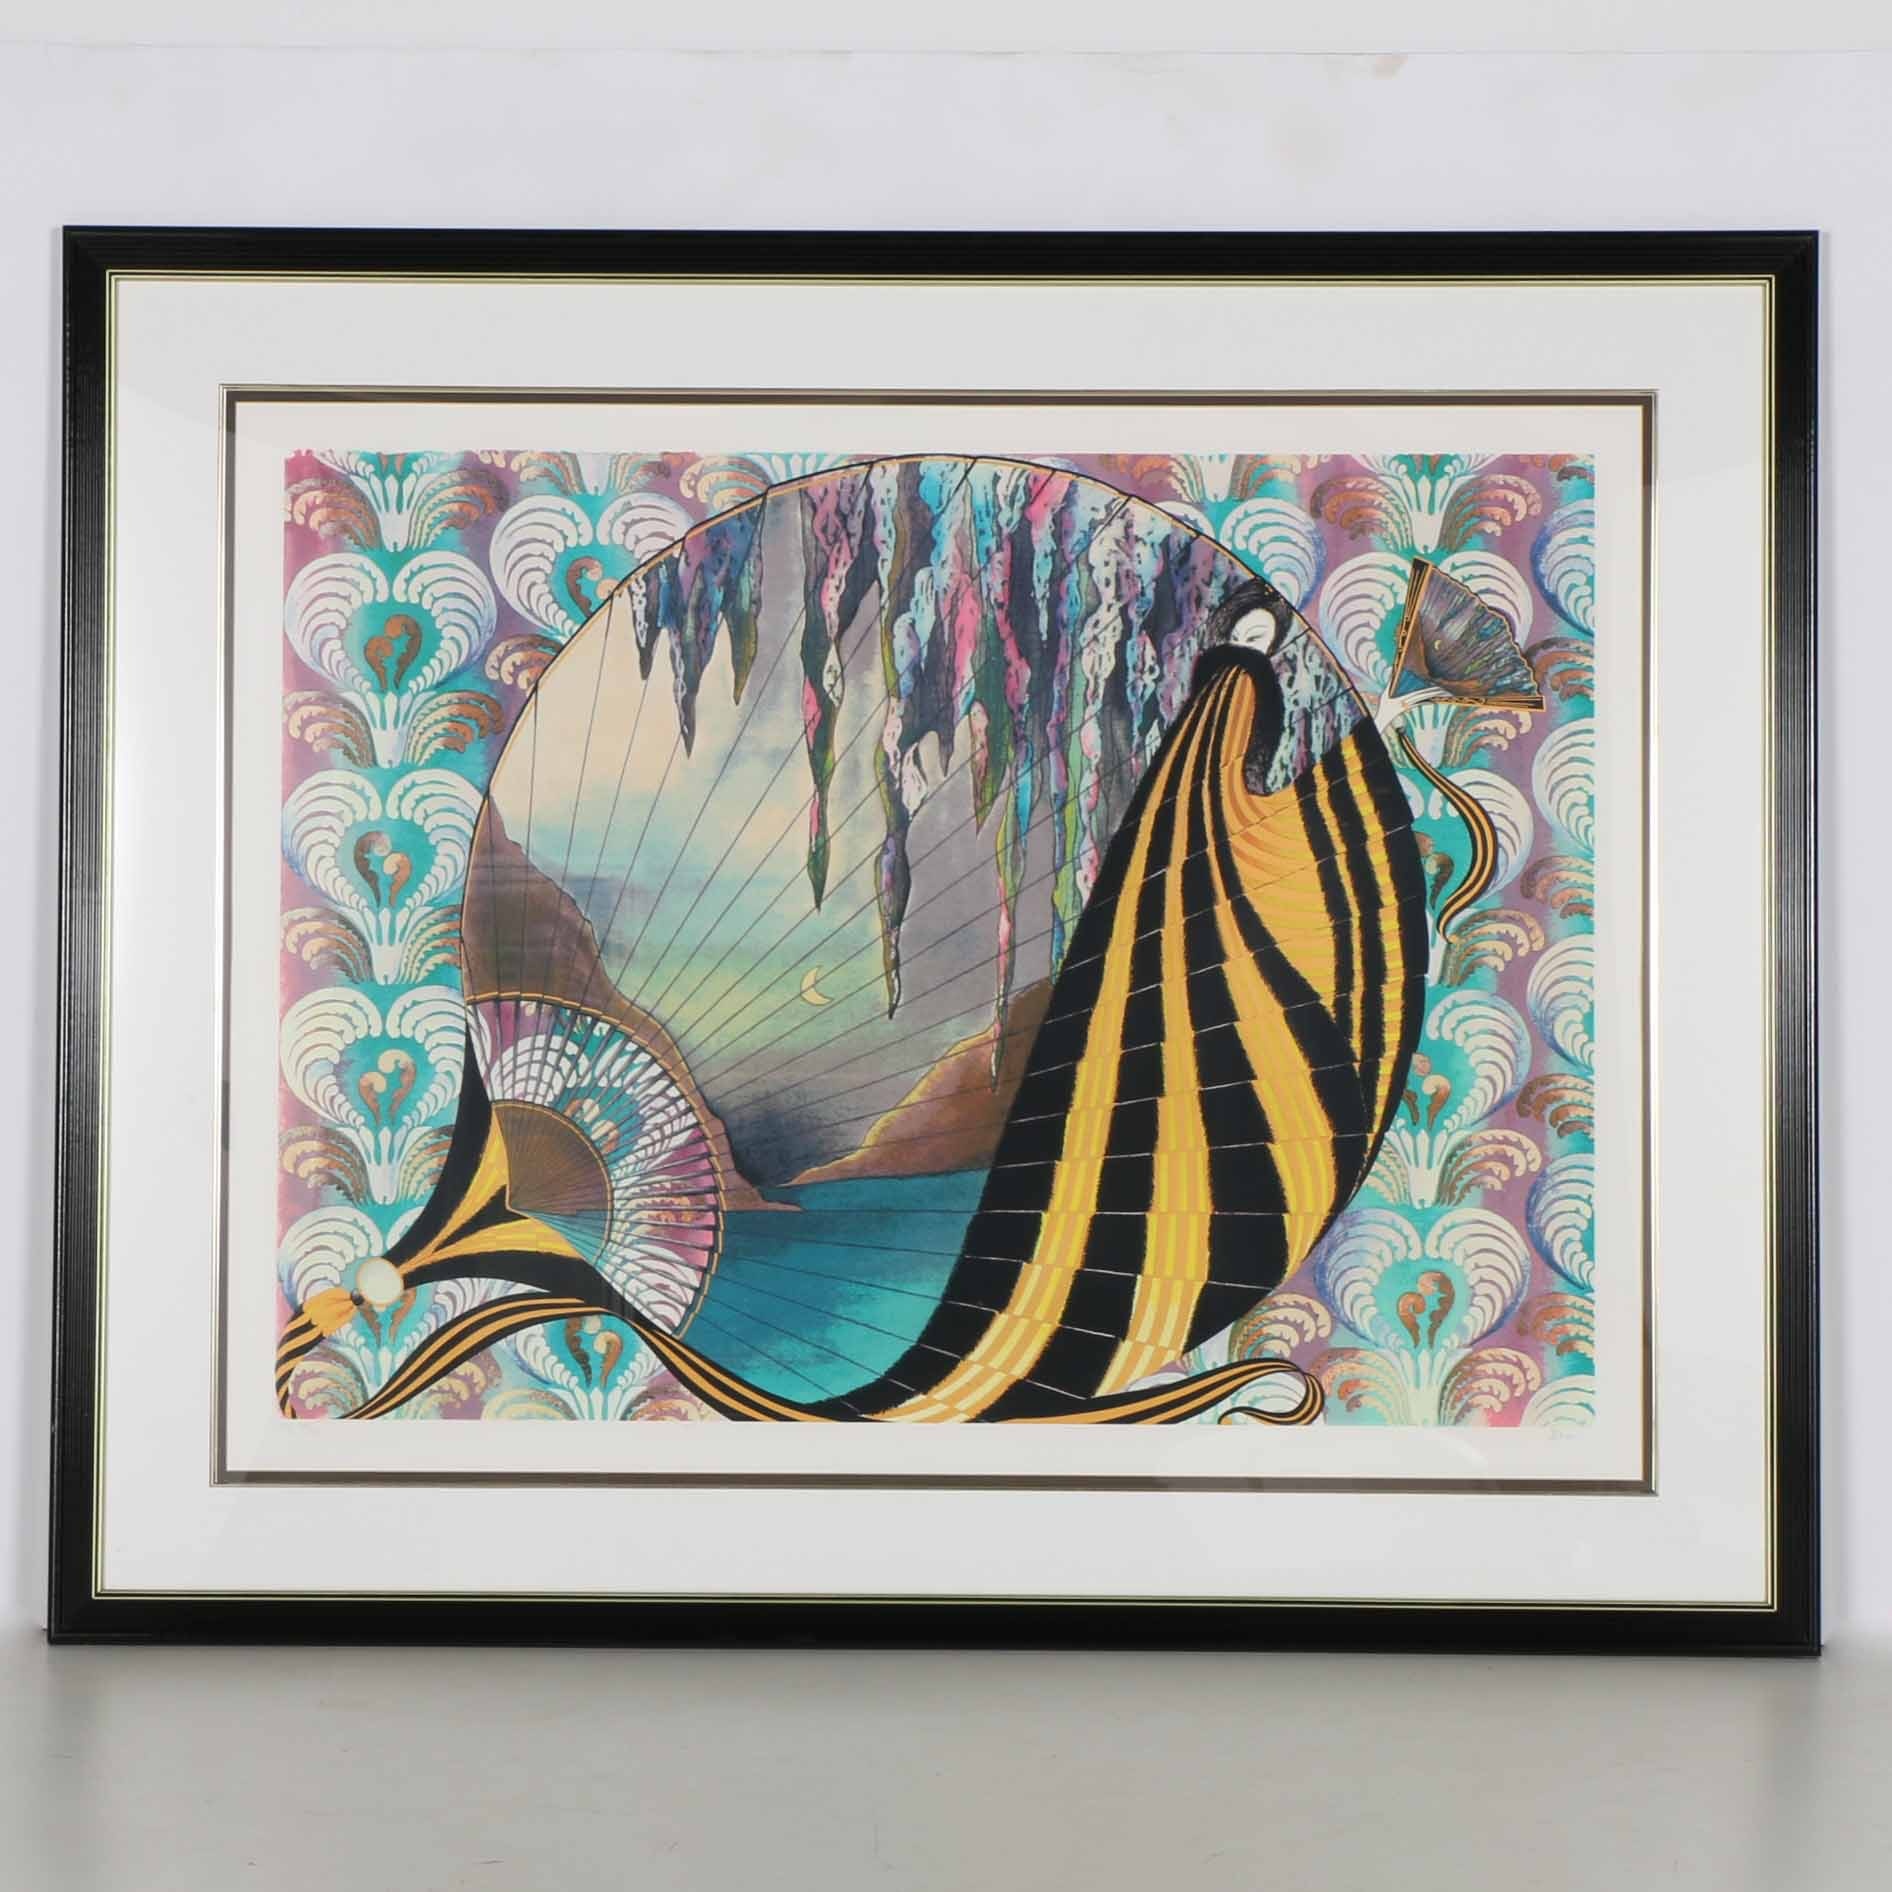 Jean-Francois Bos Limited Edition Artist's Proof Serigraph